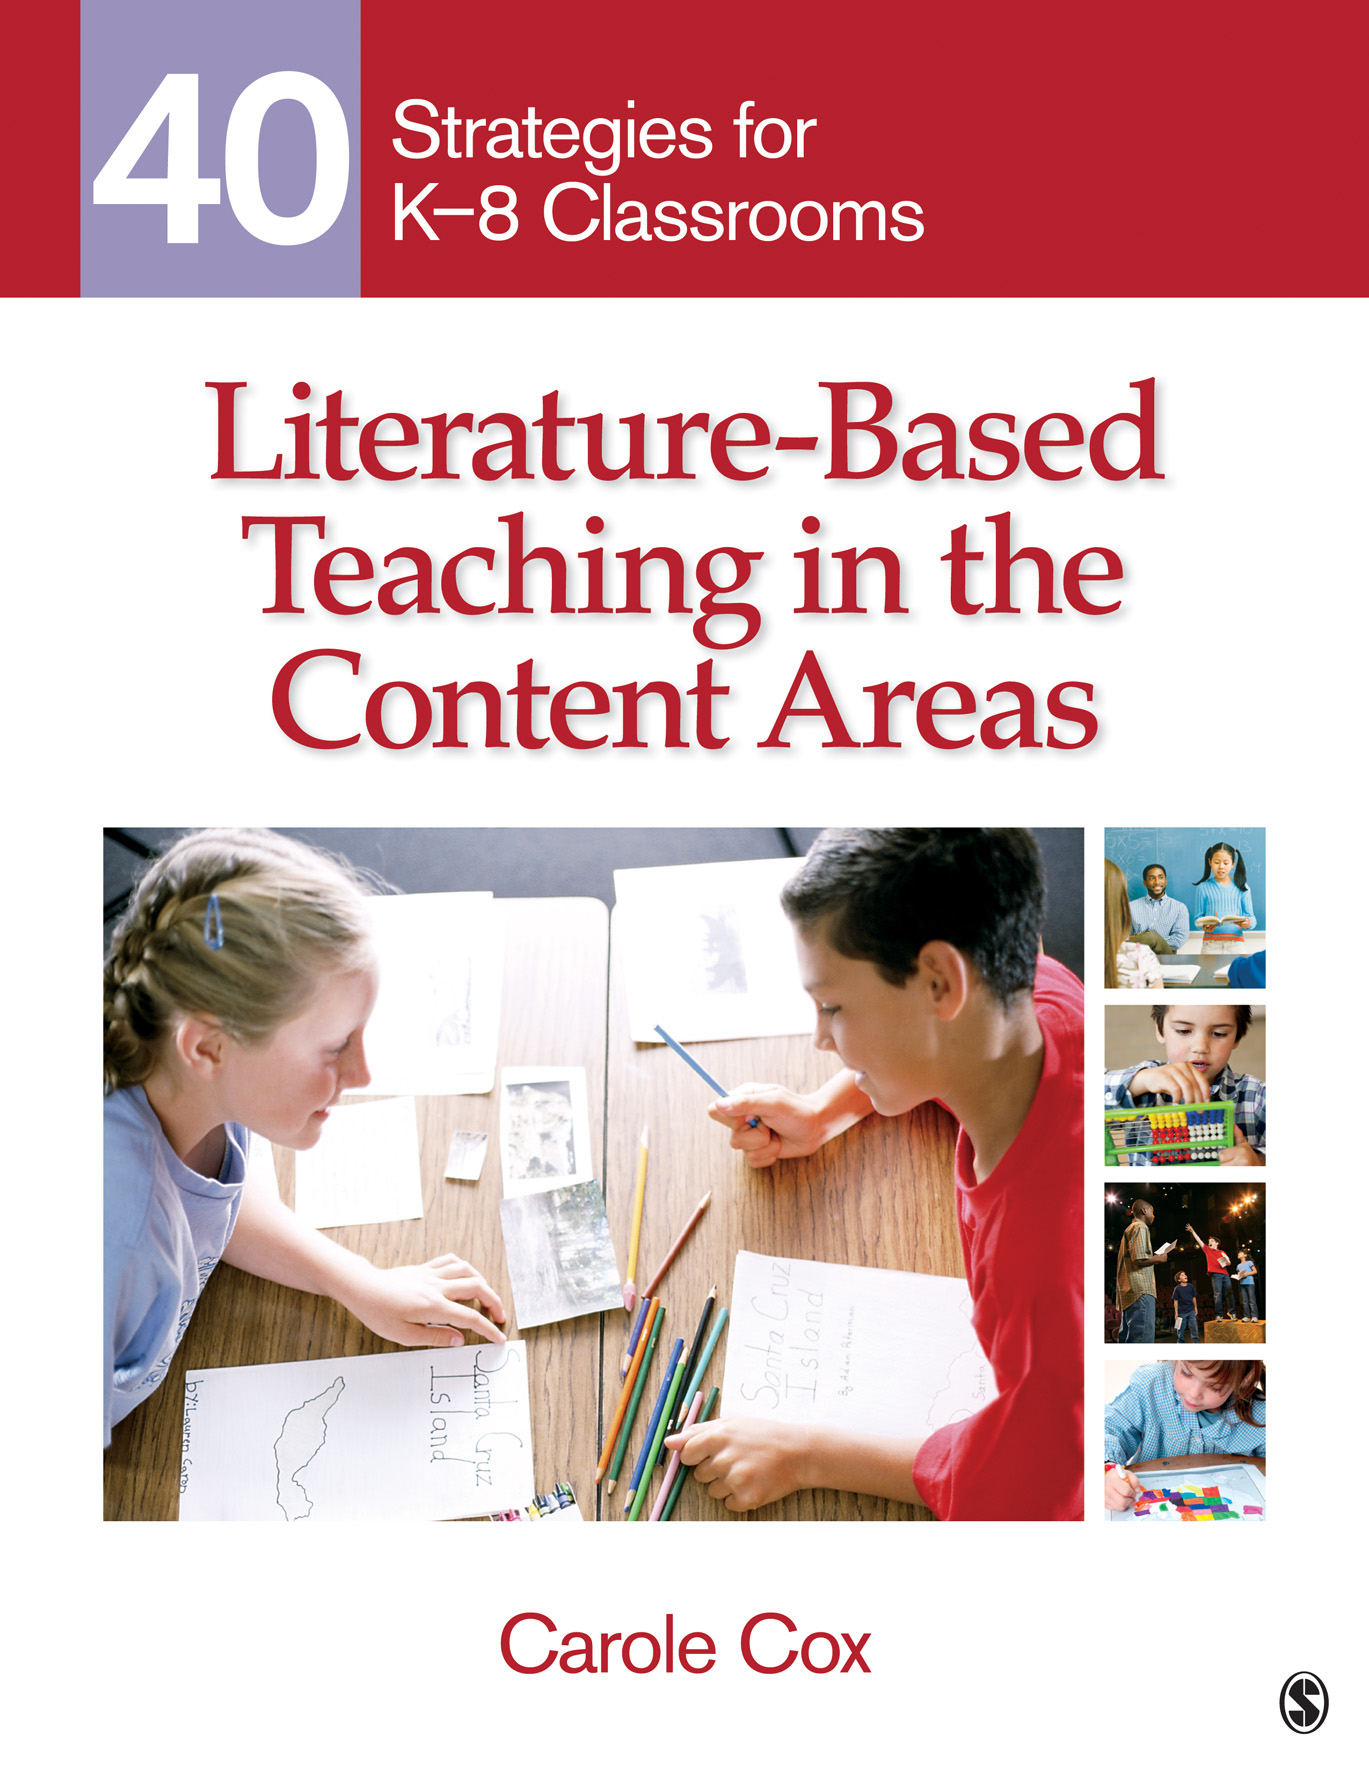 Literature-Based Teaching in the Content Areas